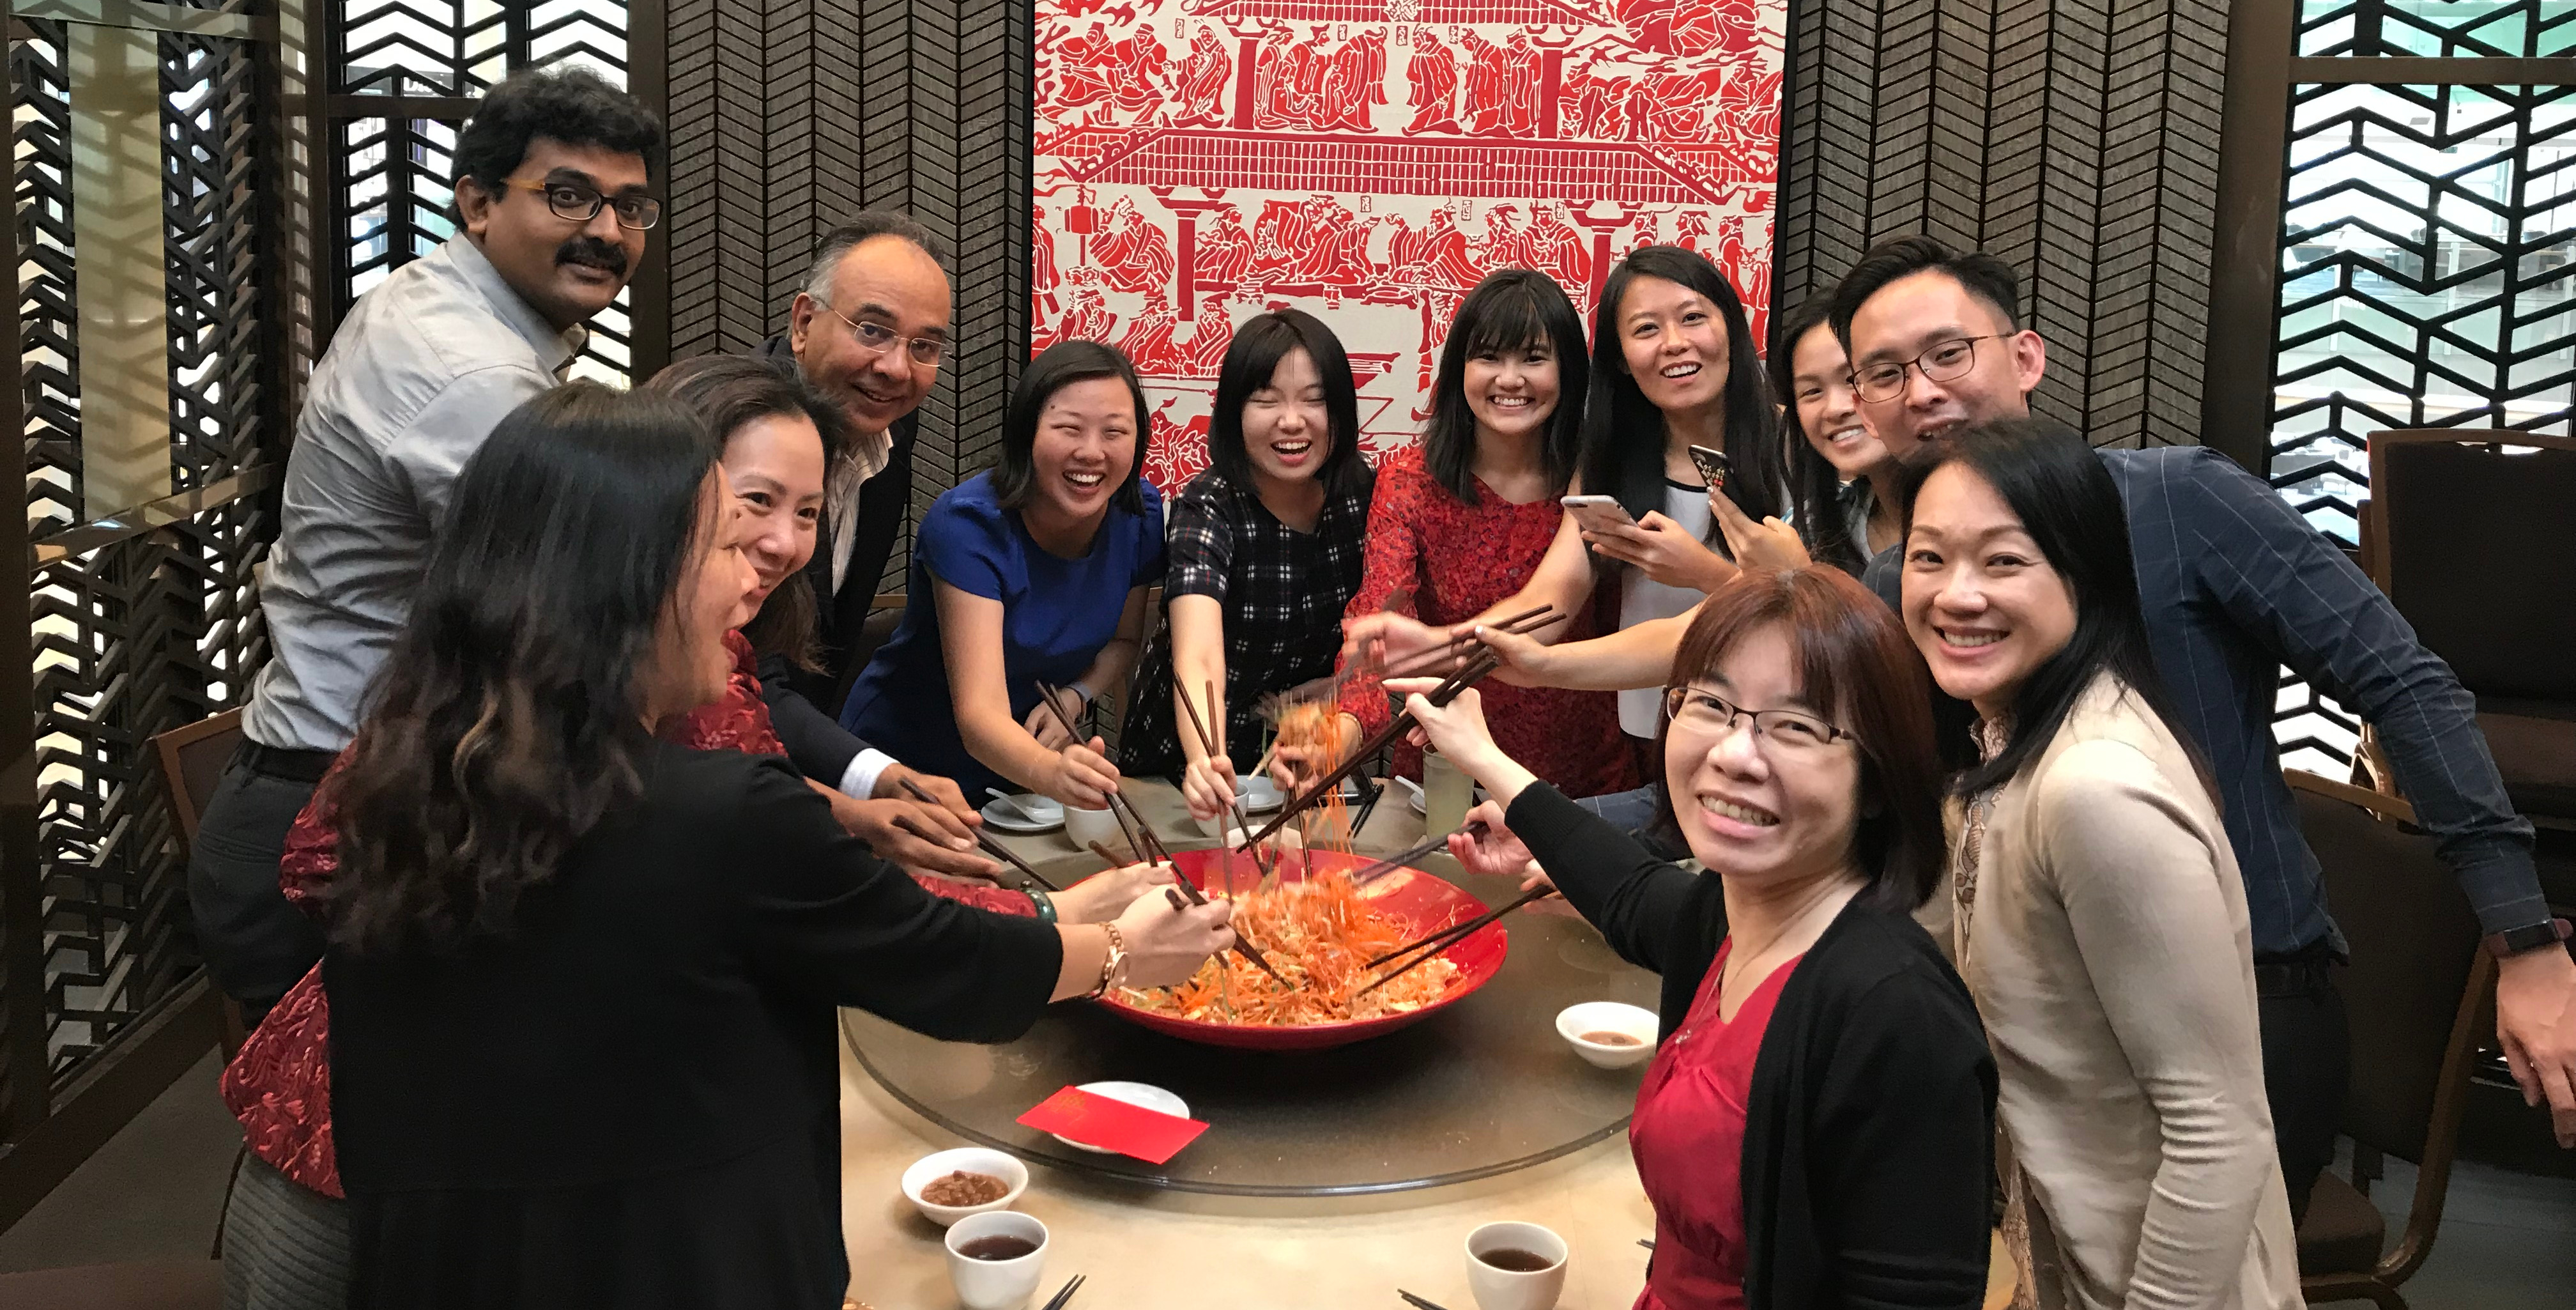 Celebrating Lo Hei during Chinese New Year